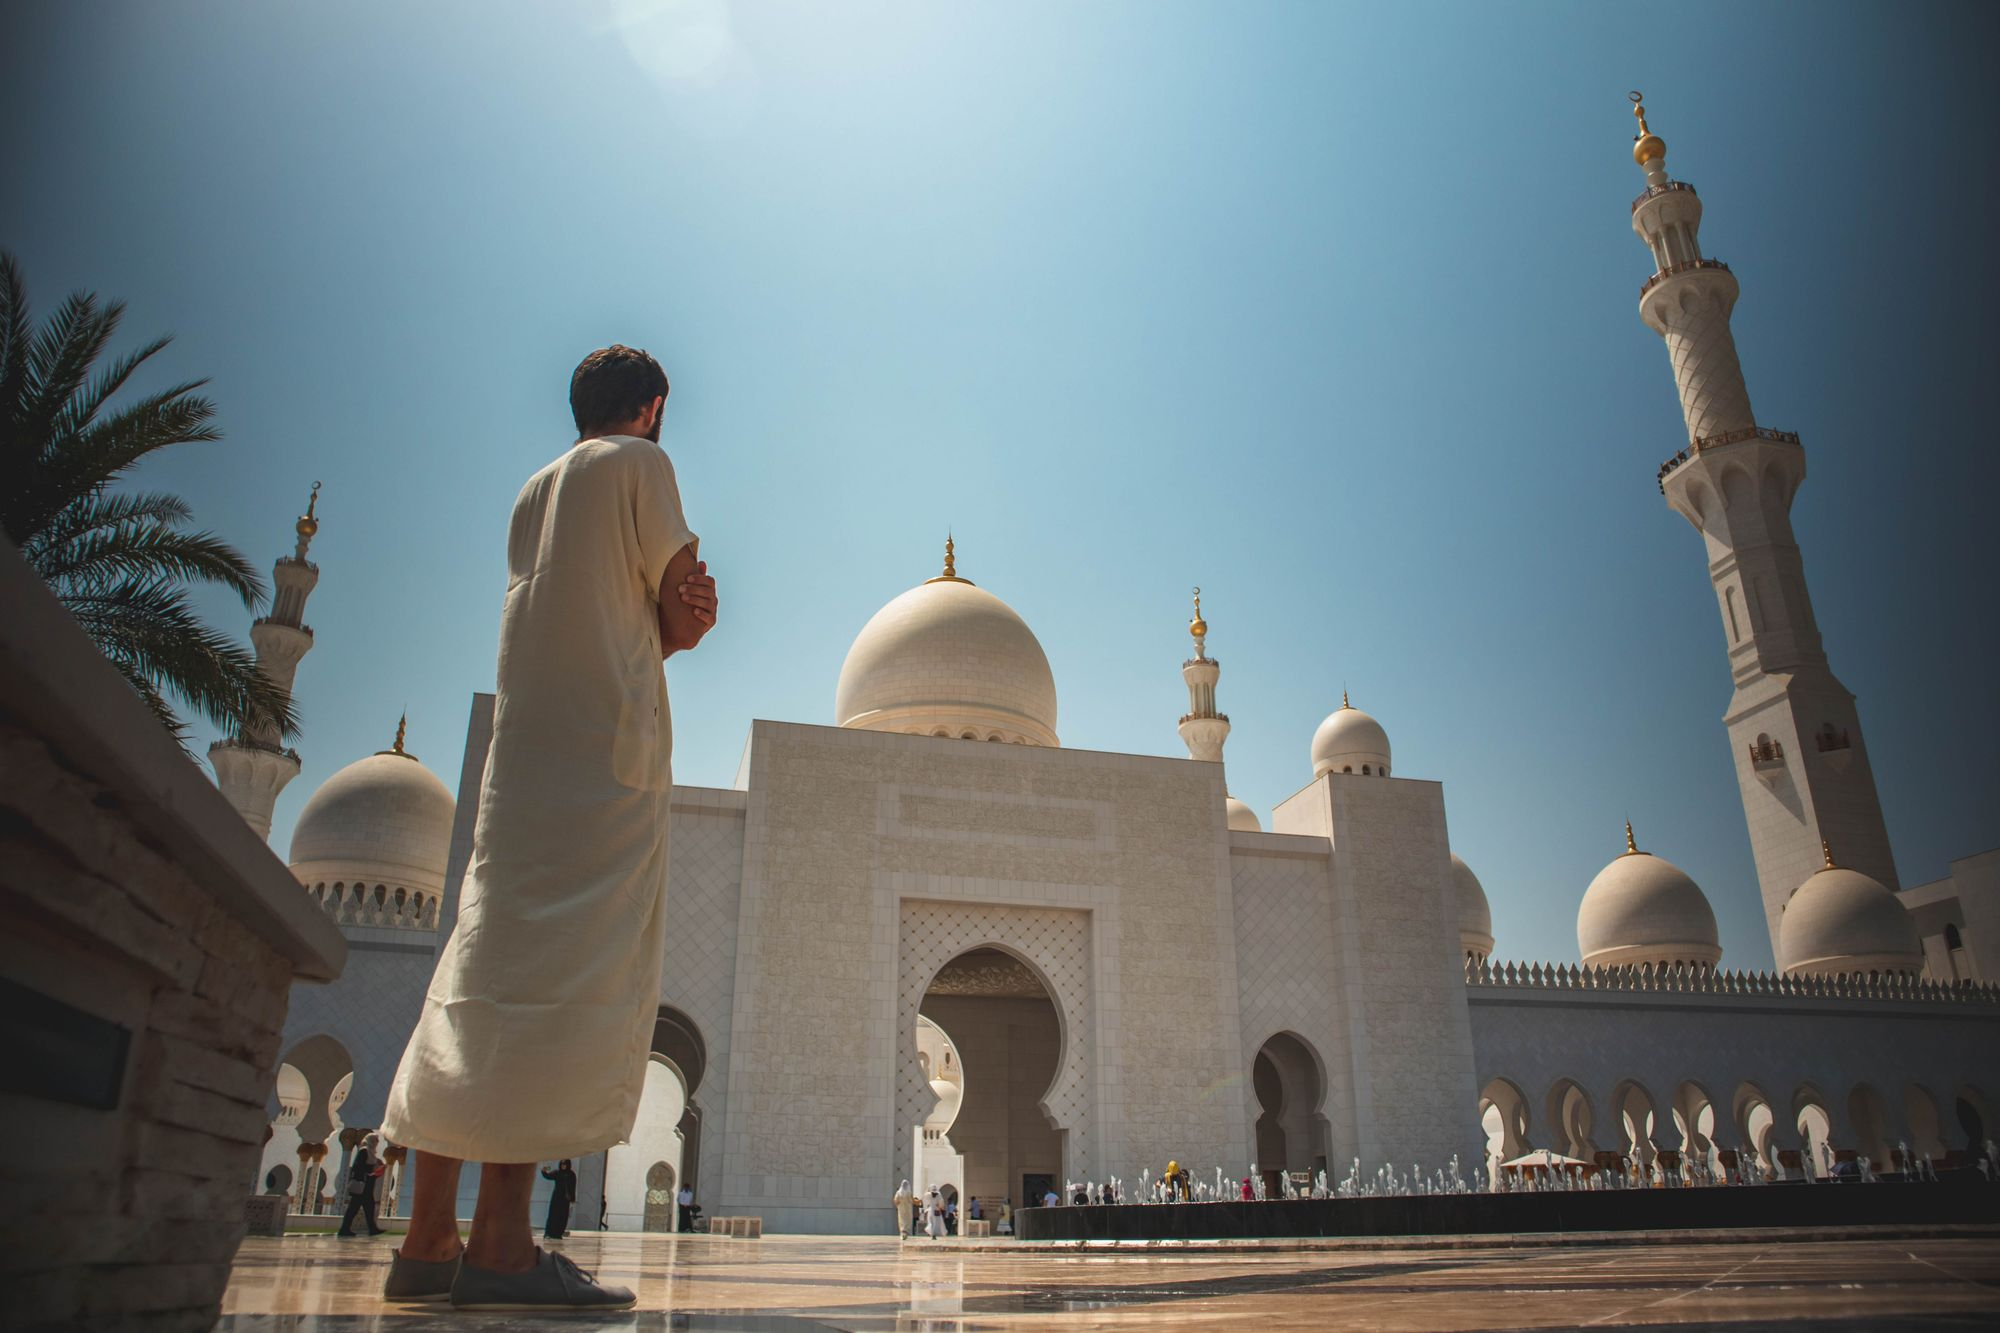 Islamic Fintech: An Ethical Financial Inclusion Proposition